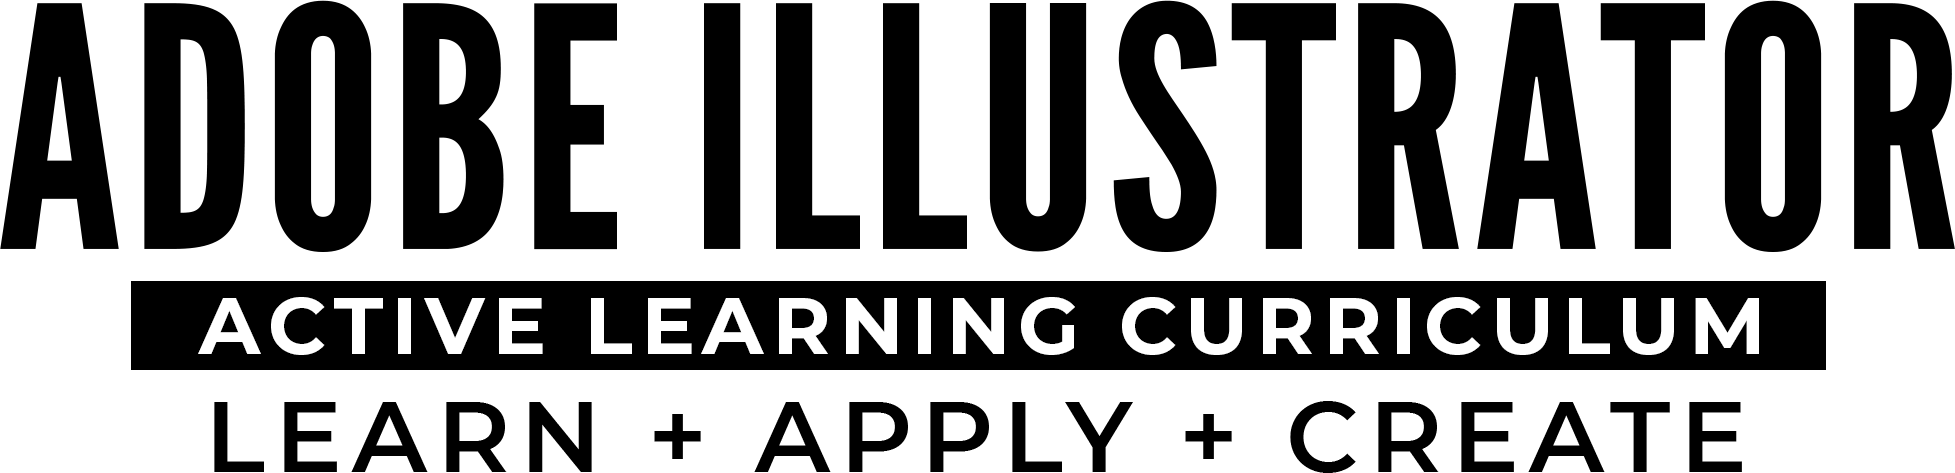 ENROLL IN ACTIVE LEARNING